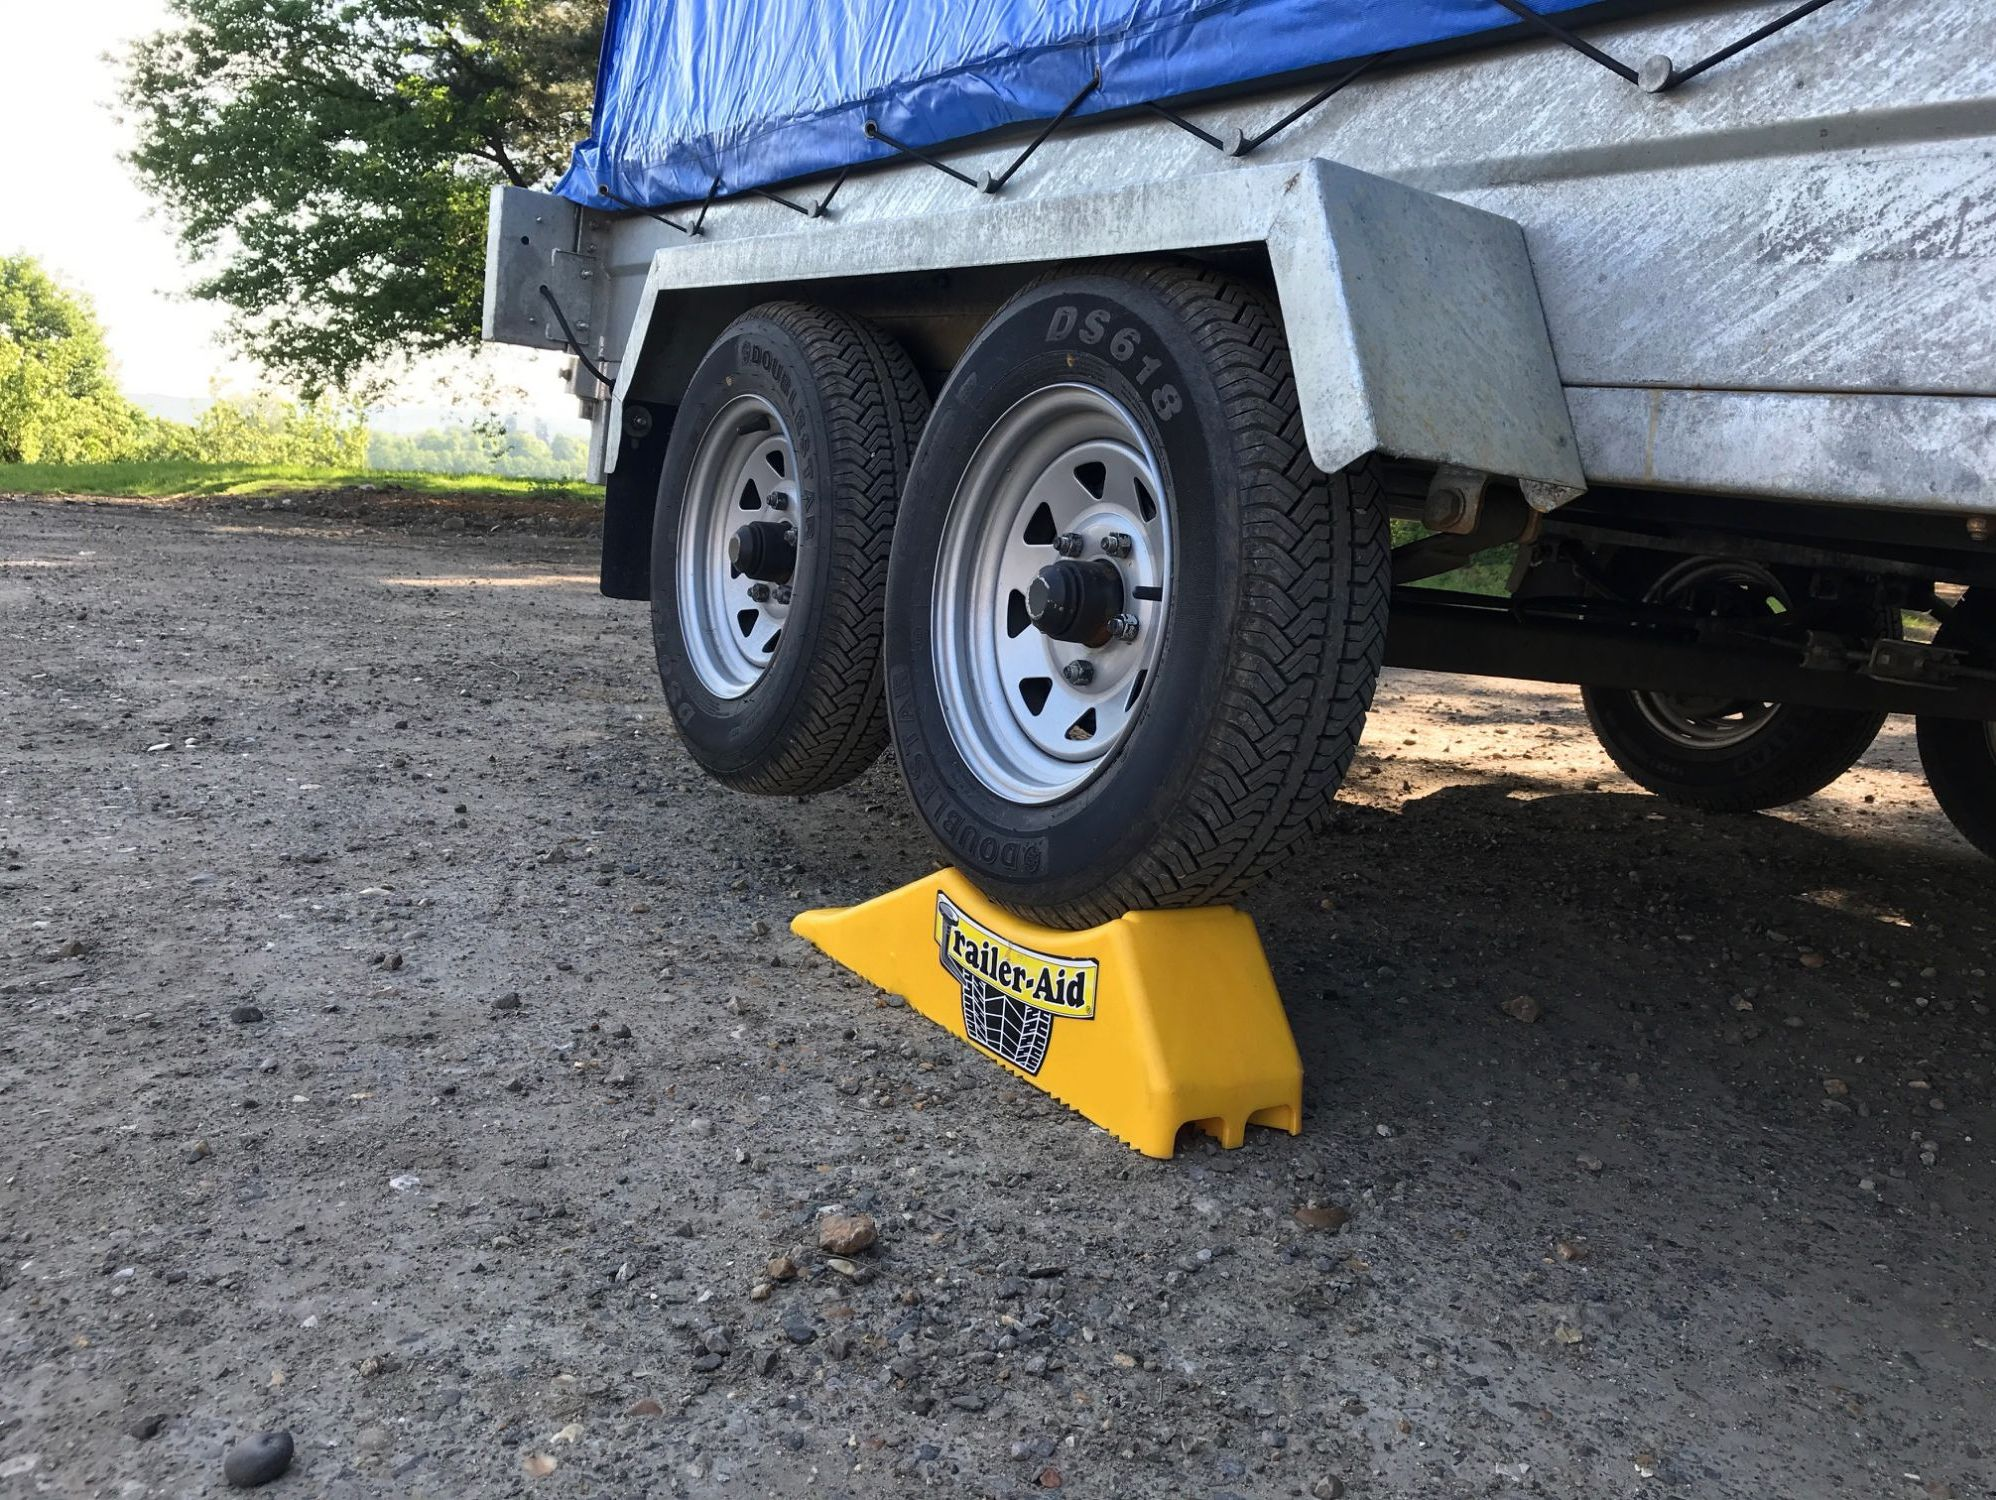 Safely change a wheel on a trailer with the Trailer-Aid ramp